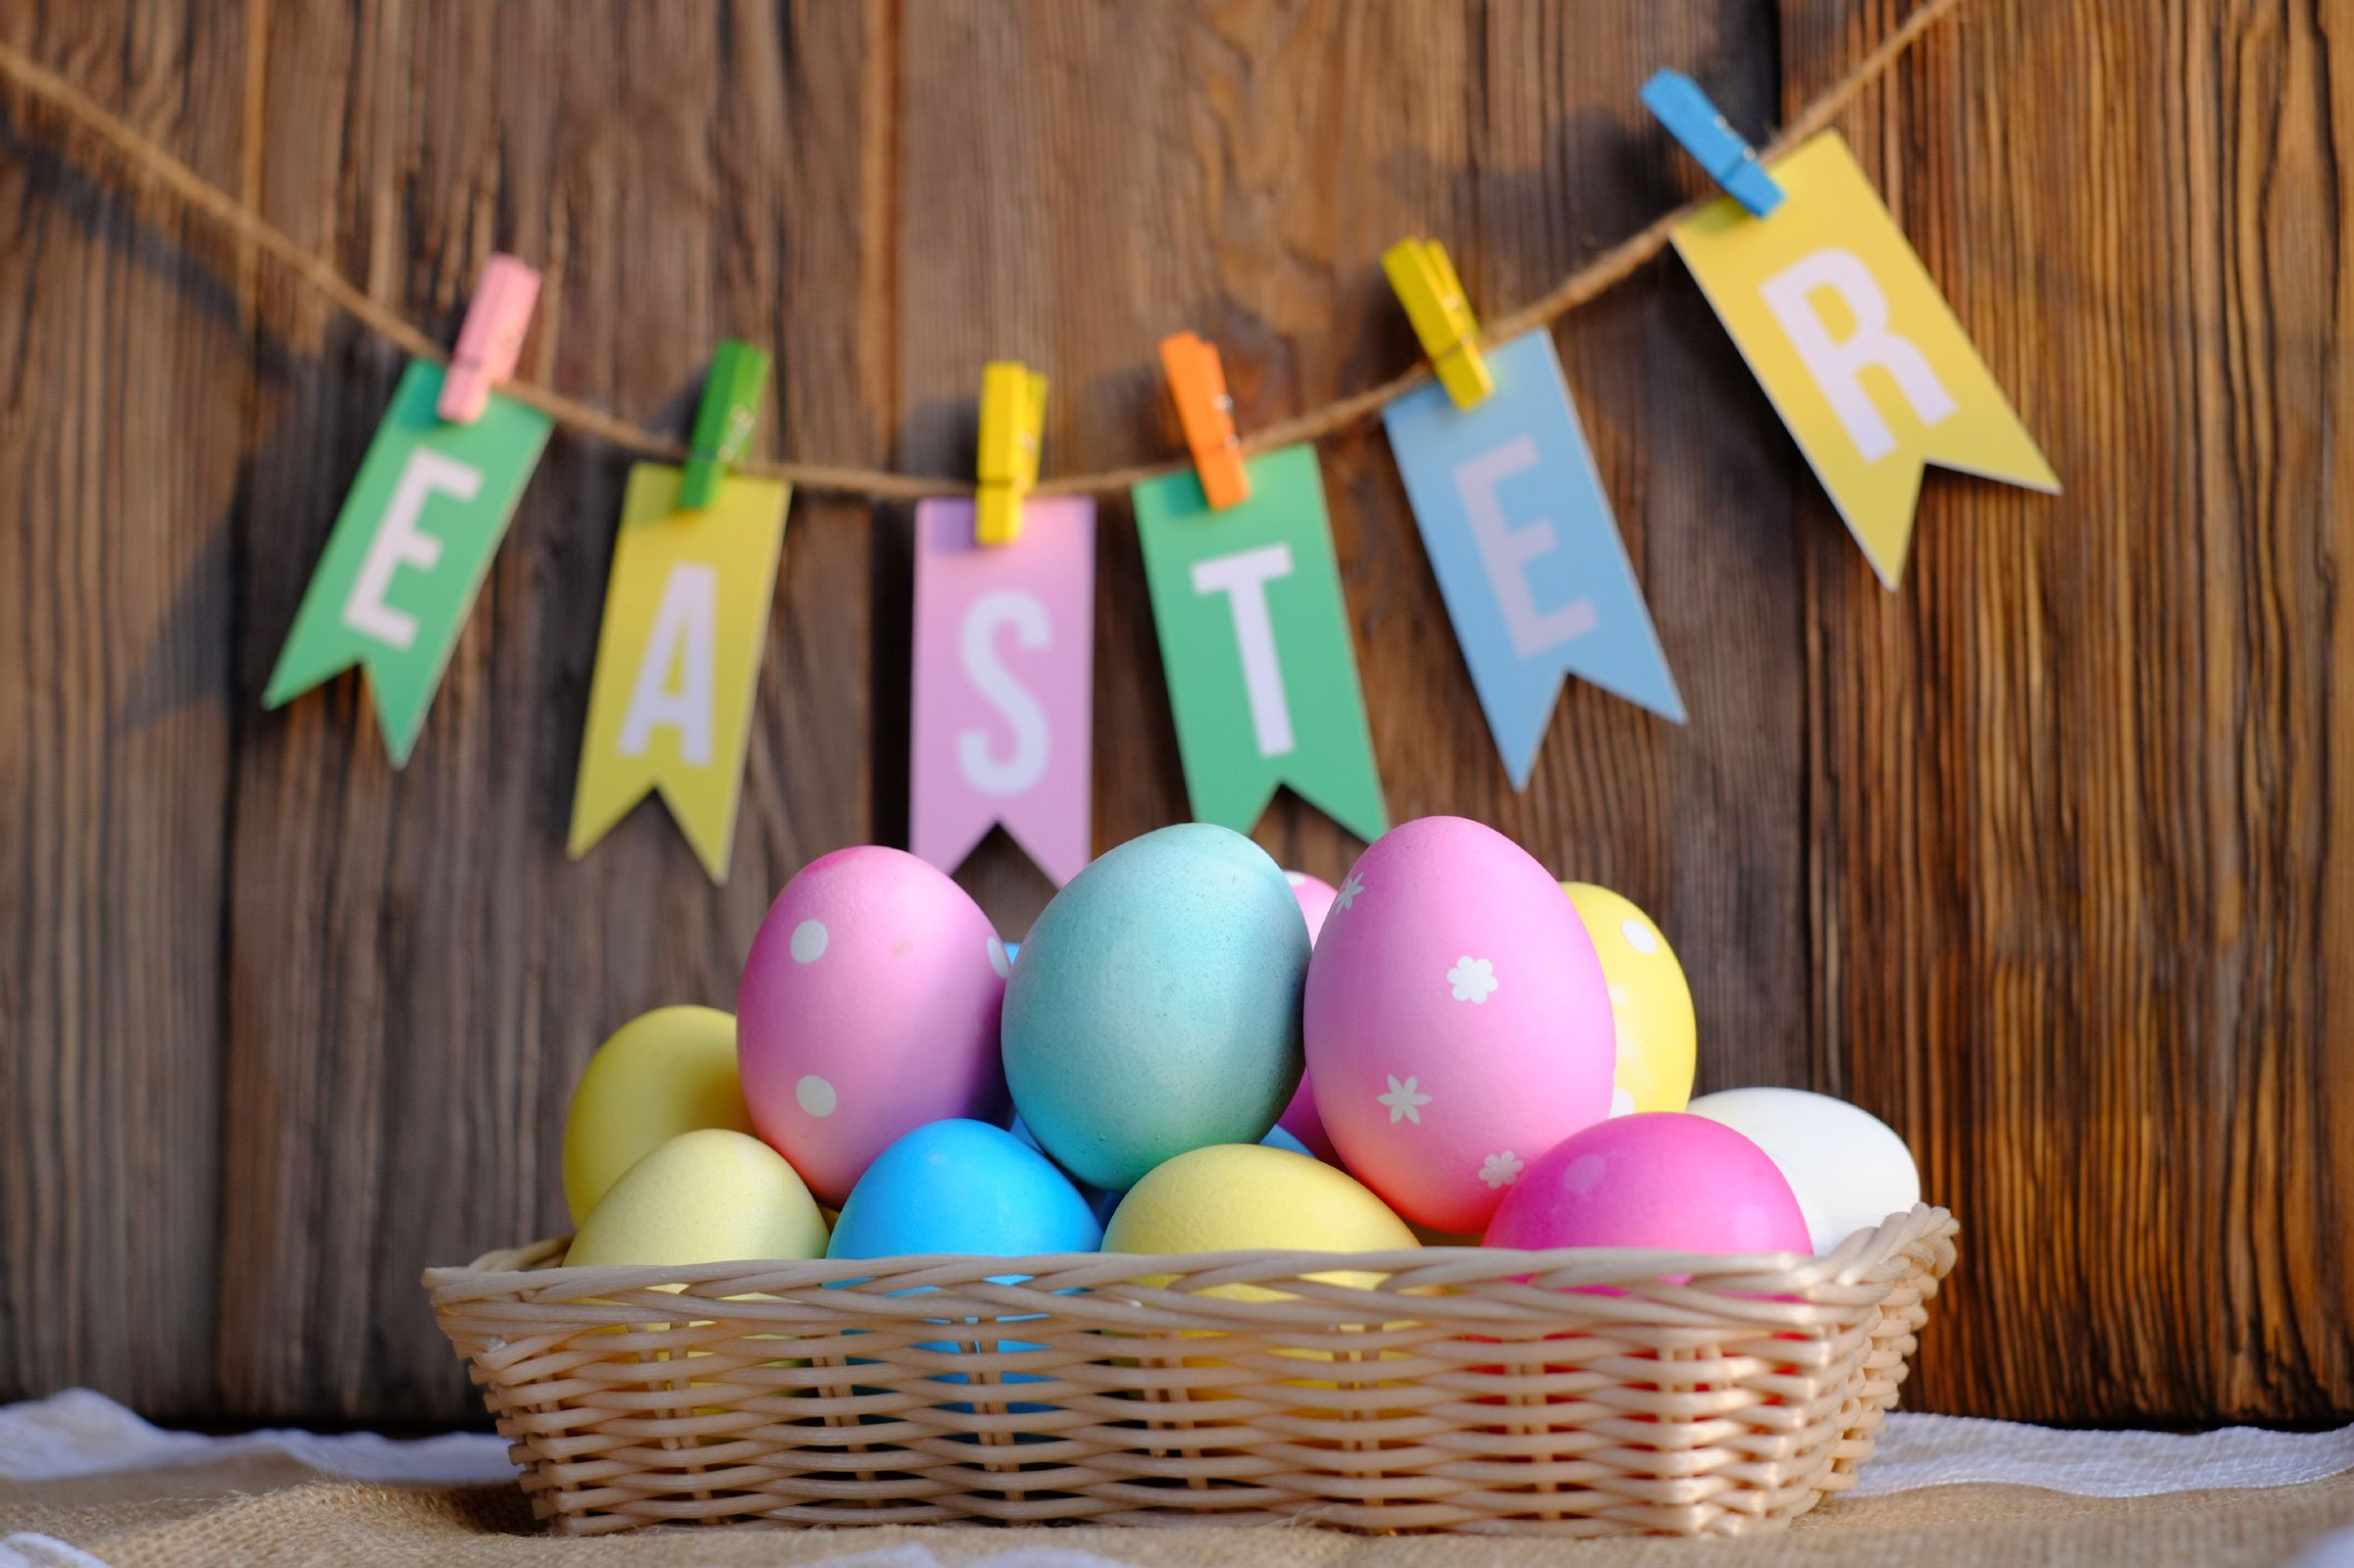 Easter, a Christian Festival or Paganism? | The Tenacity Post